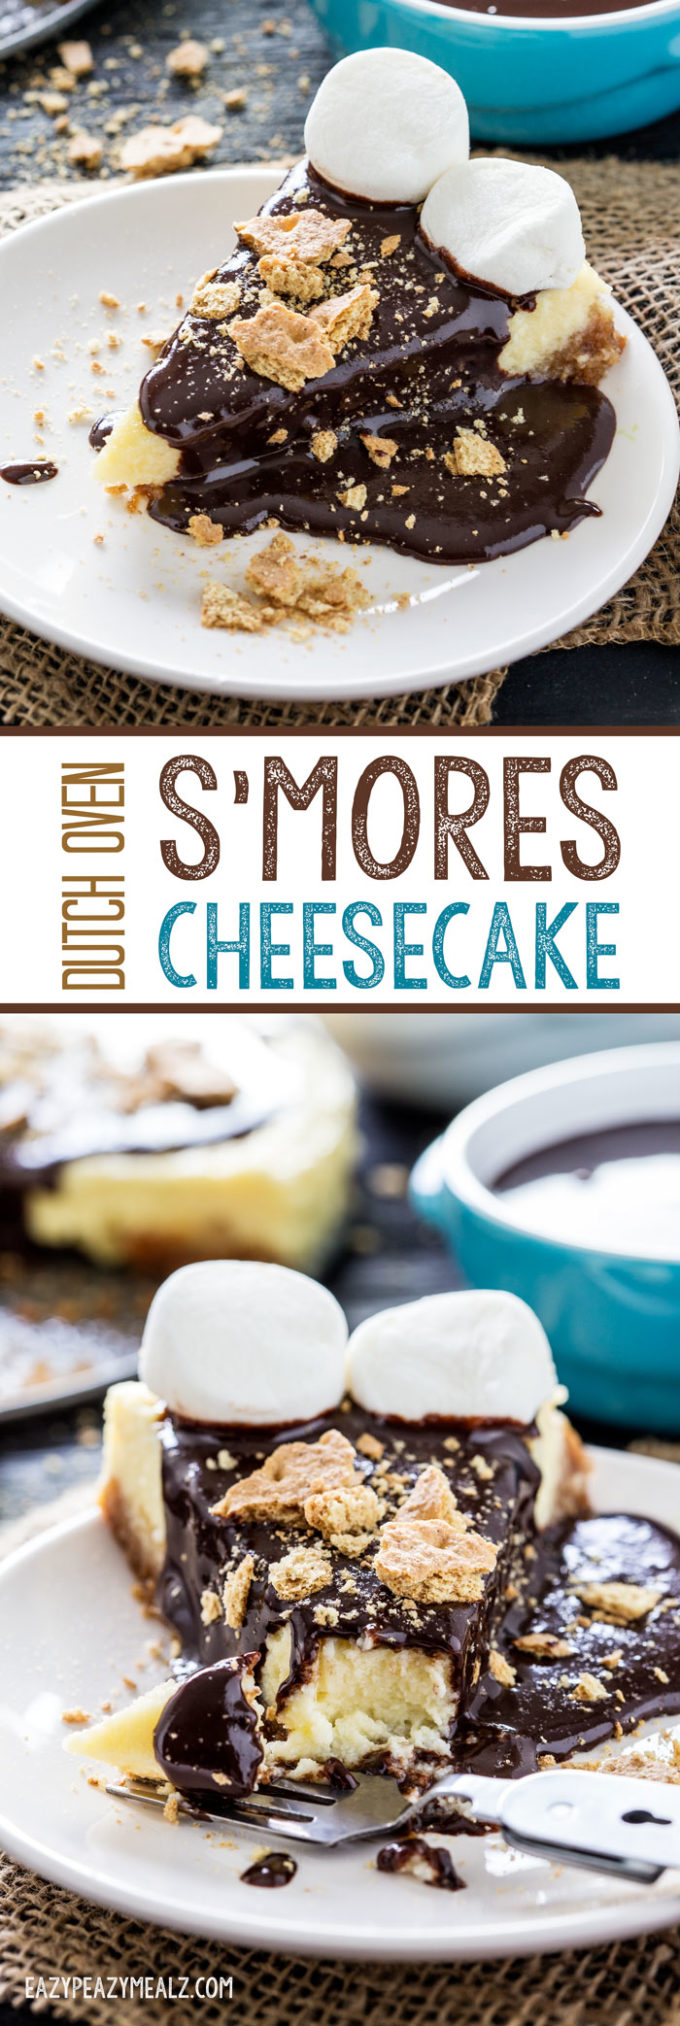 Smore's cheesecake made in a dutch oven so you can cook it while camping! So much fun.